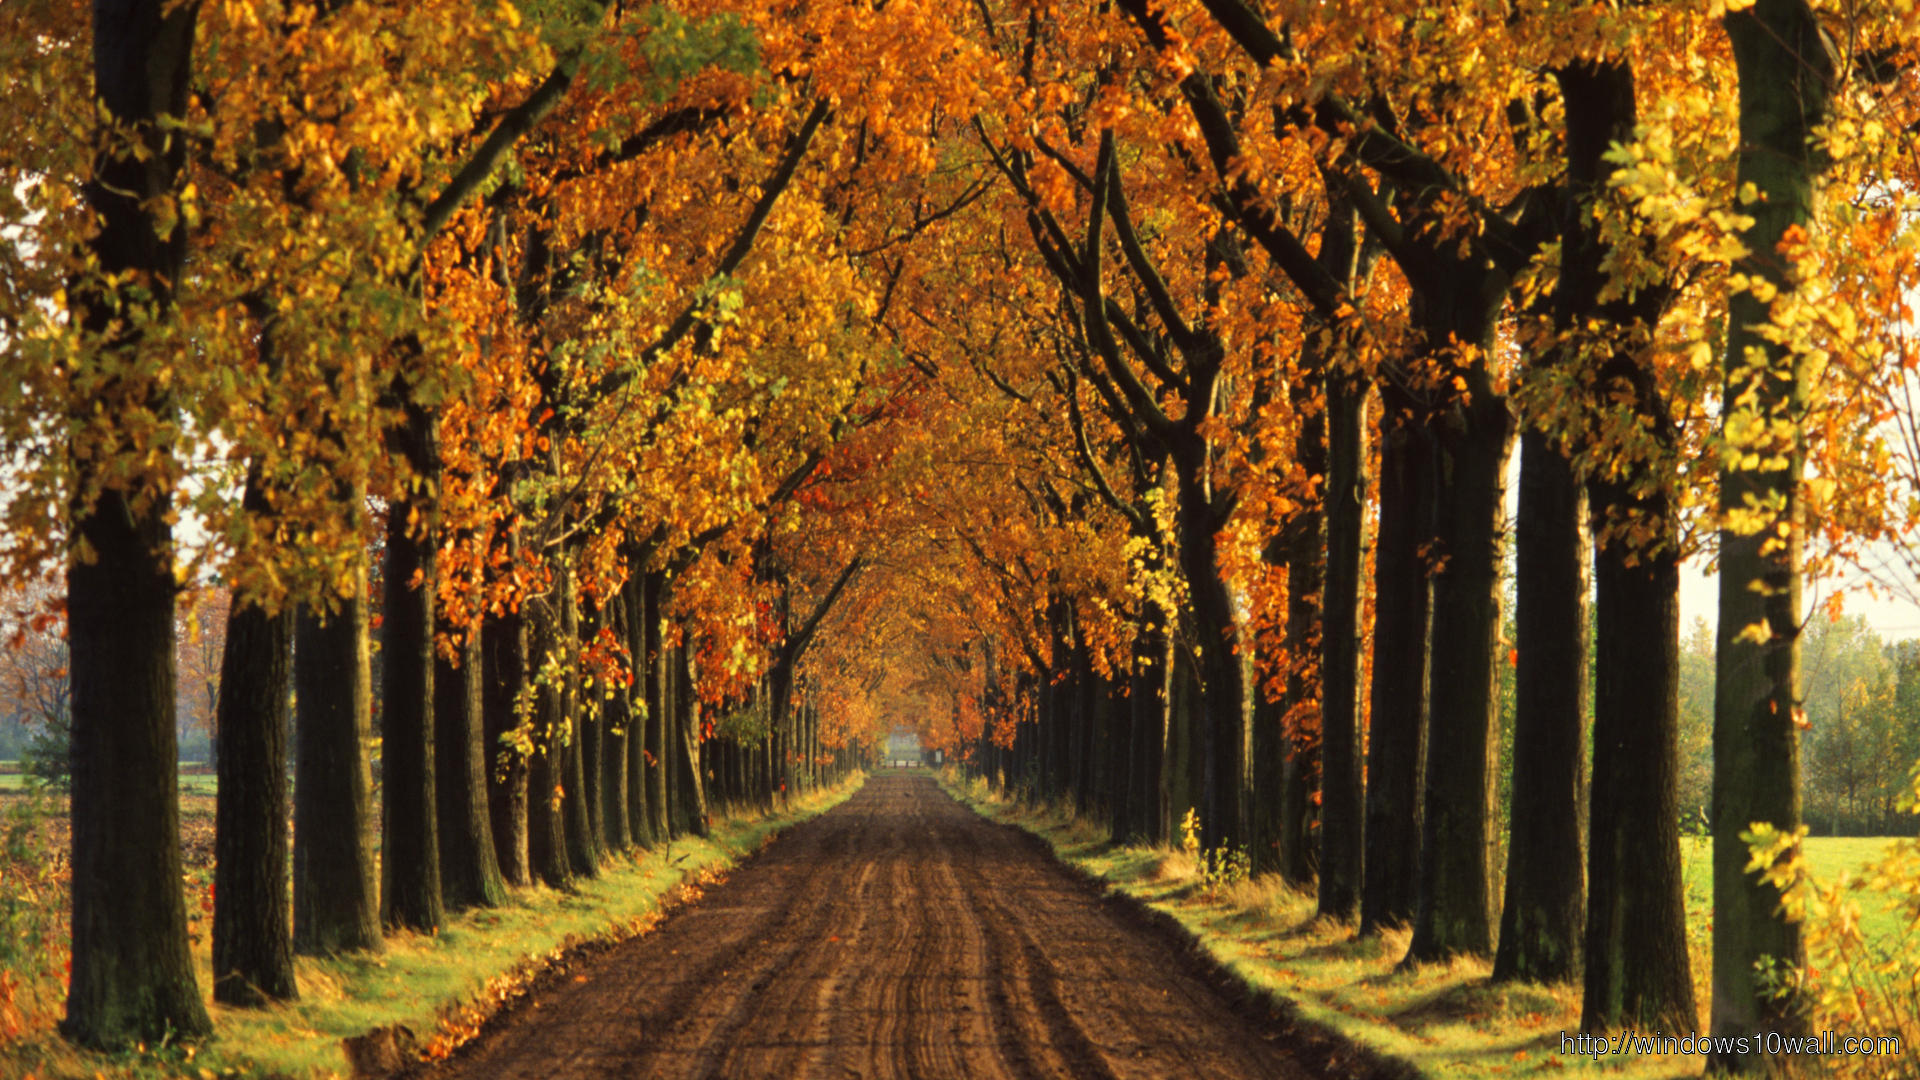 Free Download Autumn Tree Street Wallpaper Windows 10 Wallpapers 1920x1080 For Your Desktop Mobile Tablet Explore 71 Fall Trees Wallpaper Fall Wallpaper Backgrounds Free Fall Wallpapers Fall Wallpaper For Computer